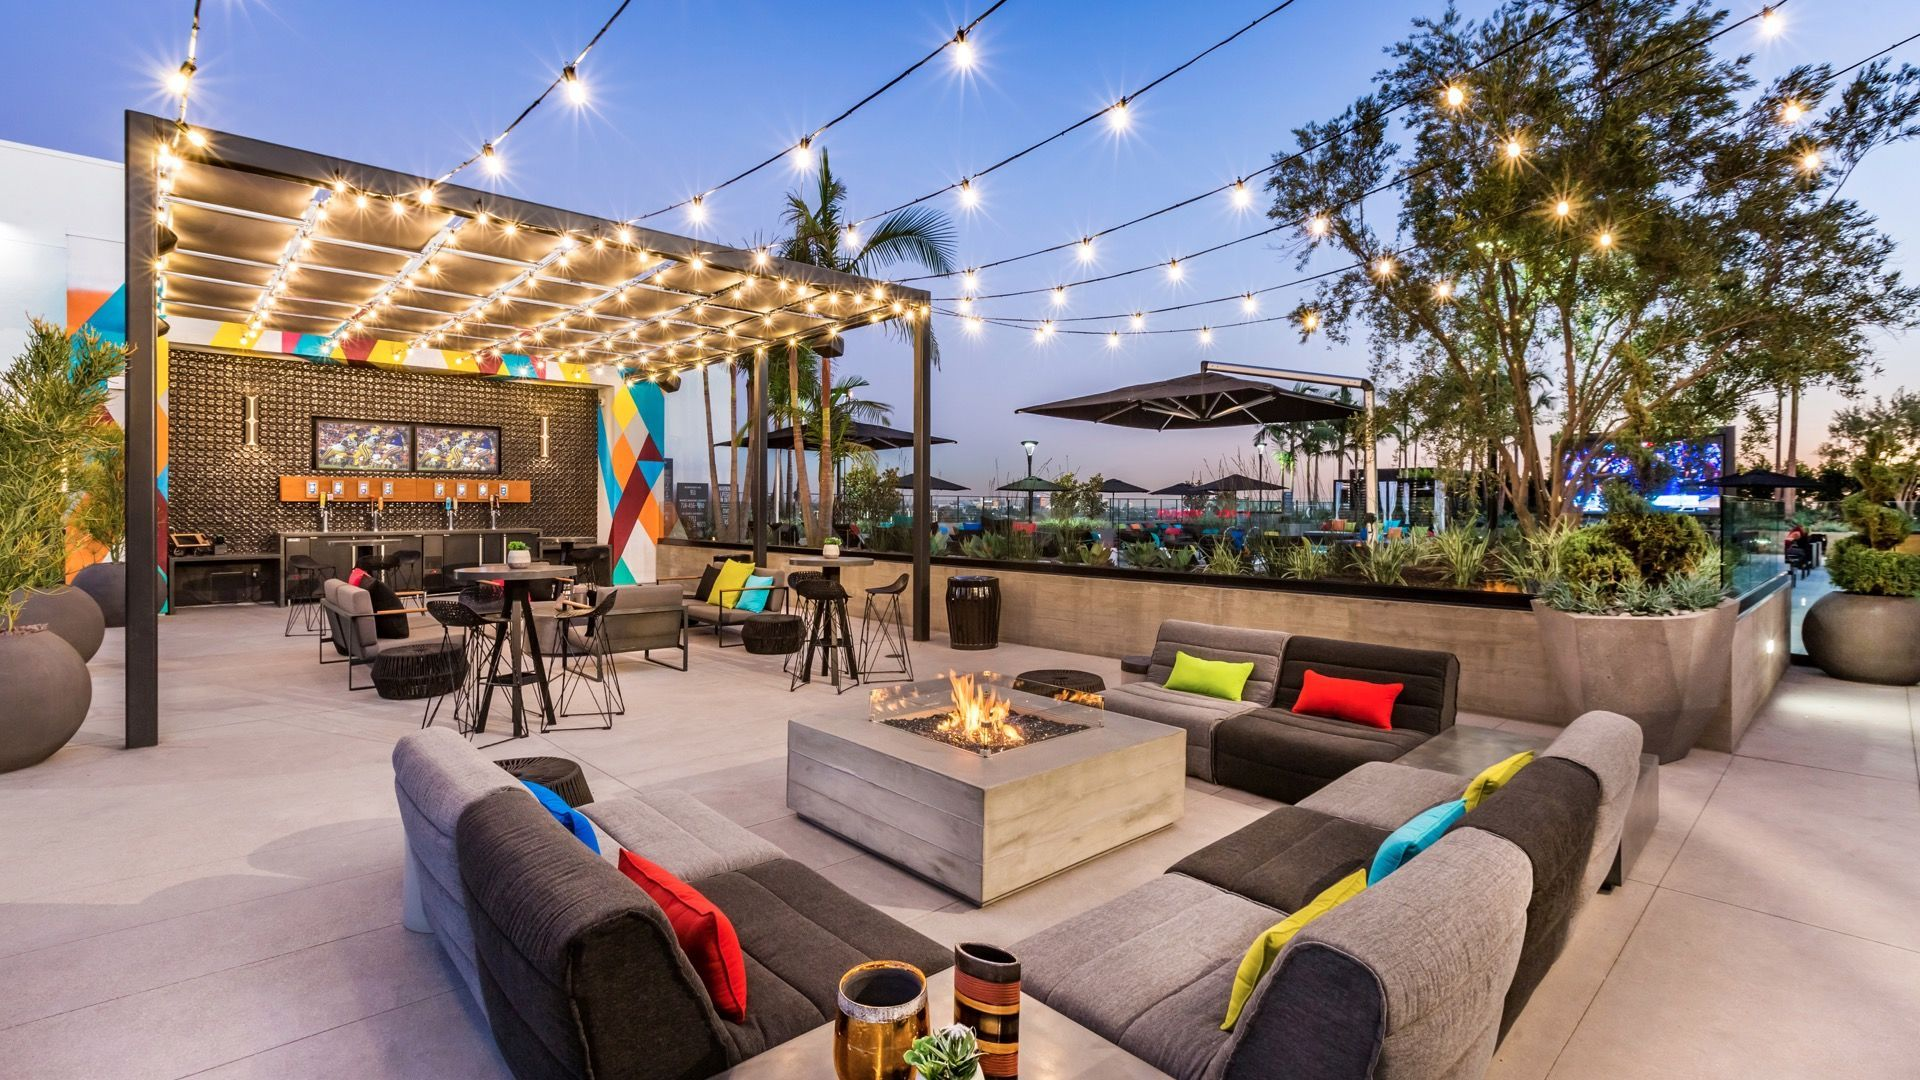 Google Image Result For Https Capi Myleasestar Com V2 Dimg 62886788 1920x1080 62886788 Jpg Outdoor Inspirations Luxury Apartments Photo Galleries